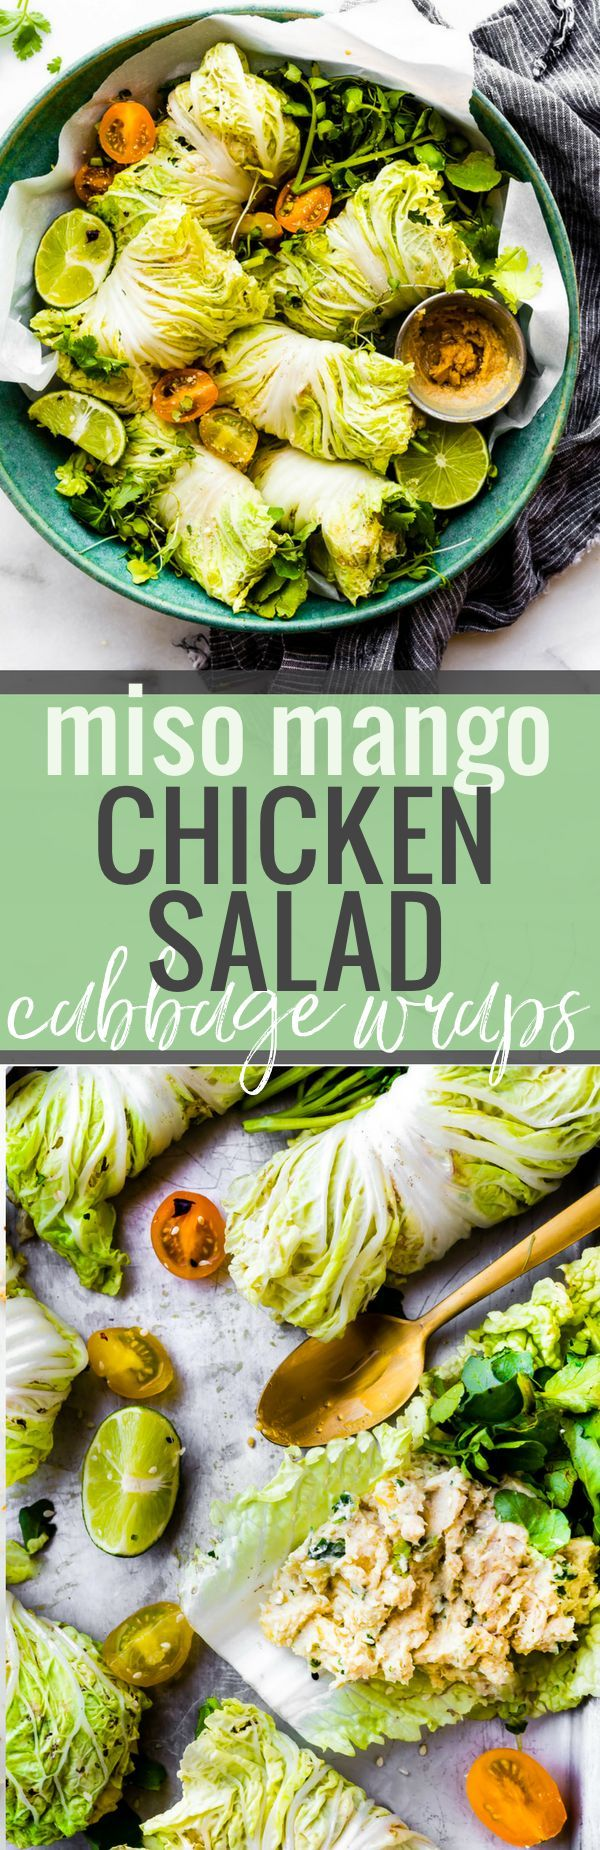 Miso Mango Chicken Salad Cabbage wraps are a light low carb lunch that's easy to make! A mango chicken salad that's mayo free, paleo friendly, flavorful! pread the miso mango chicken salad mixture over napa cabbage, add a little bit of watercress, then firmly roll up! www.cottercrunch.com